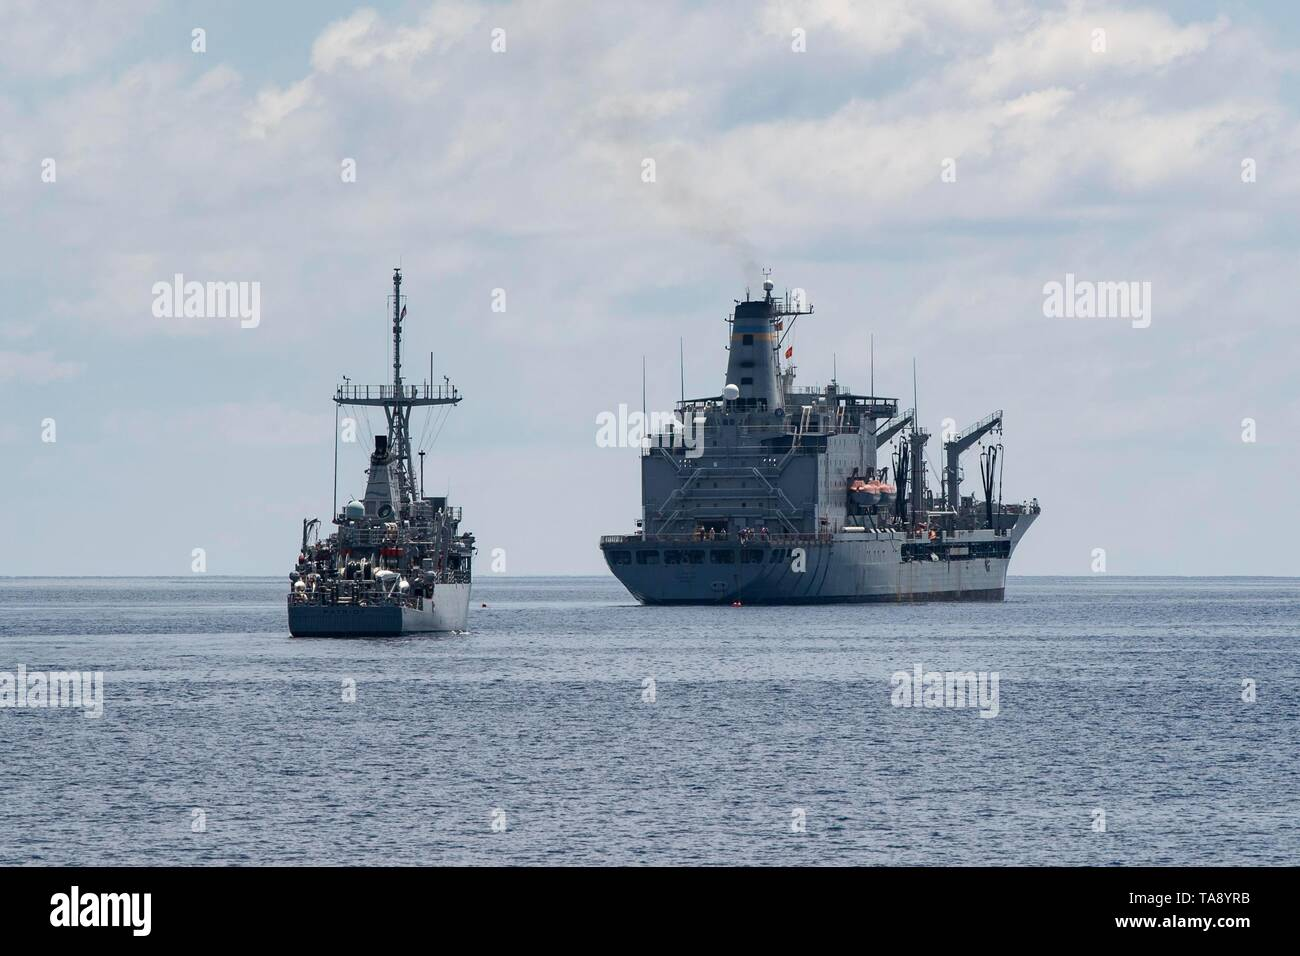 190515-N-SB587-1010 SOUTH CHINA SEA (May 15, 2019) The Avenger-class mine countermeasure ship USS Patriot (MCM 7) approaches the fleet replenishment oiler USNS Guadalupe (T-AO 200) during a replenishment-at-sea. Patriot, part of Mine Countermeasures Squadron 7, is operating in the U.S. 7th Fleet area of operations to enhance interoperability with partners and serve as a ready-response platform for contingency operations. (U.S. Navy photo by Mass Communication Specialist 2nd Class Corbin J. Shea) - Stock Image